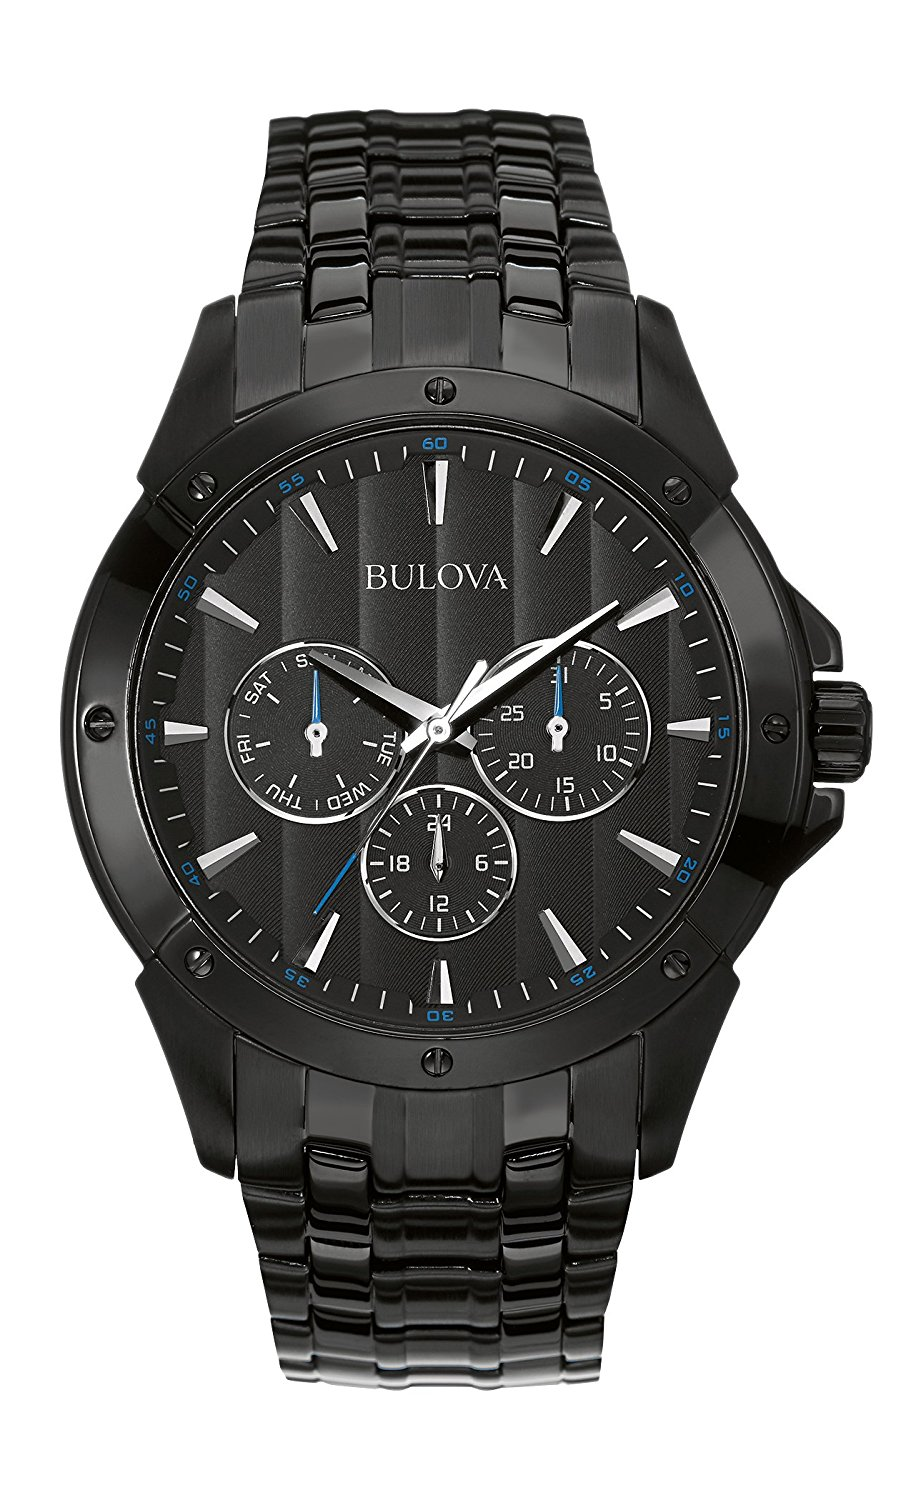 abb40a081 Get Quotations · Bulova Men's 98C121 Sport Analog Display Japanese Quartz  Black Watch